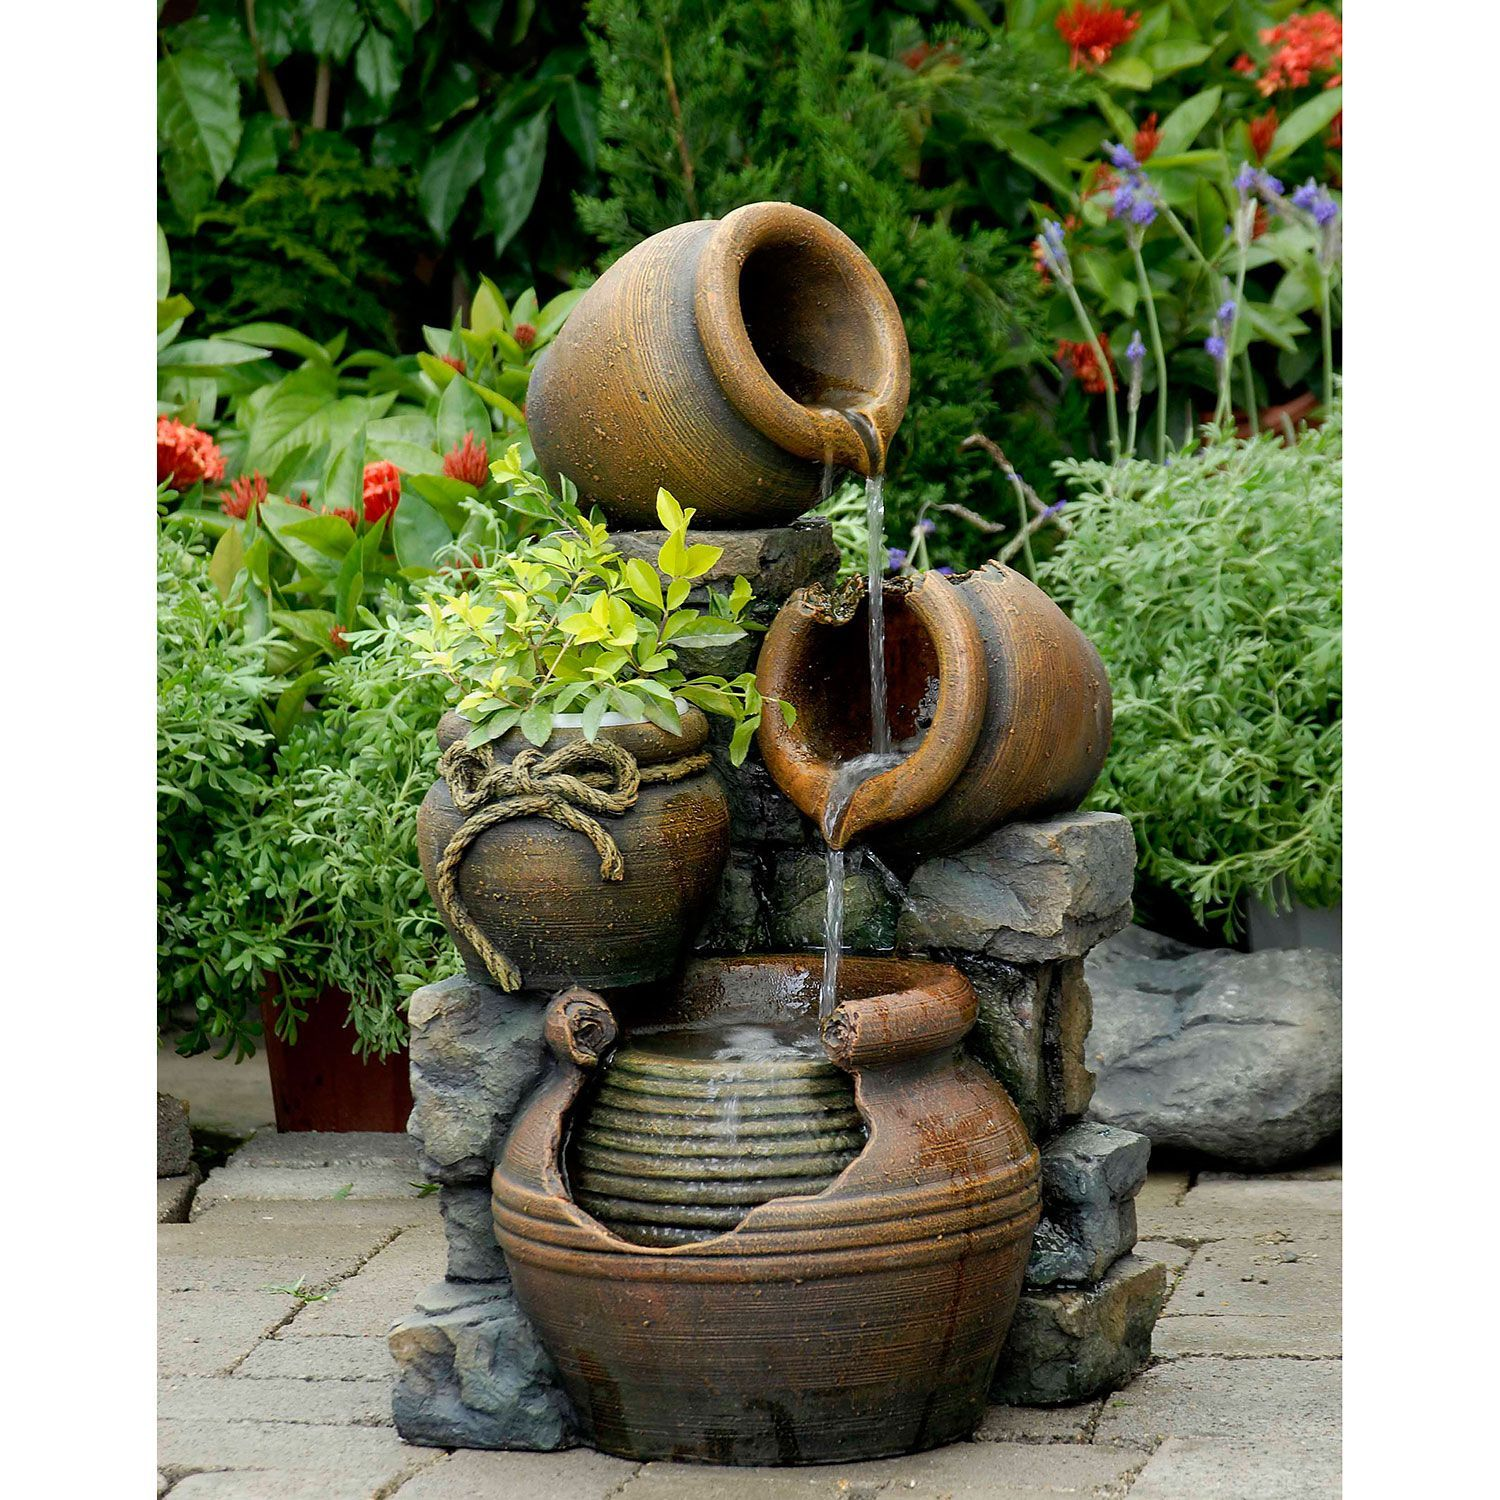 Jeco Multi Pots With Flower Pot Outdoor Water Fountain, Brown (Resin),  Outdoor